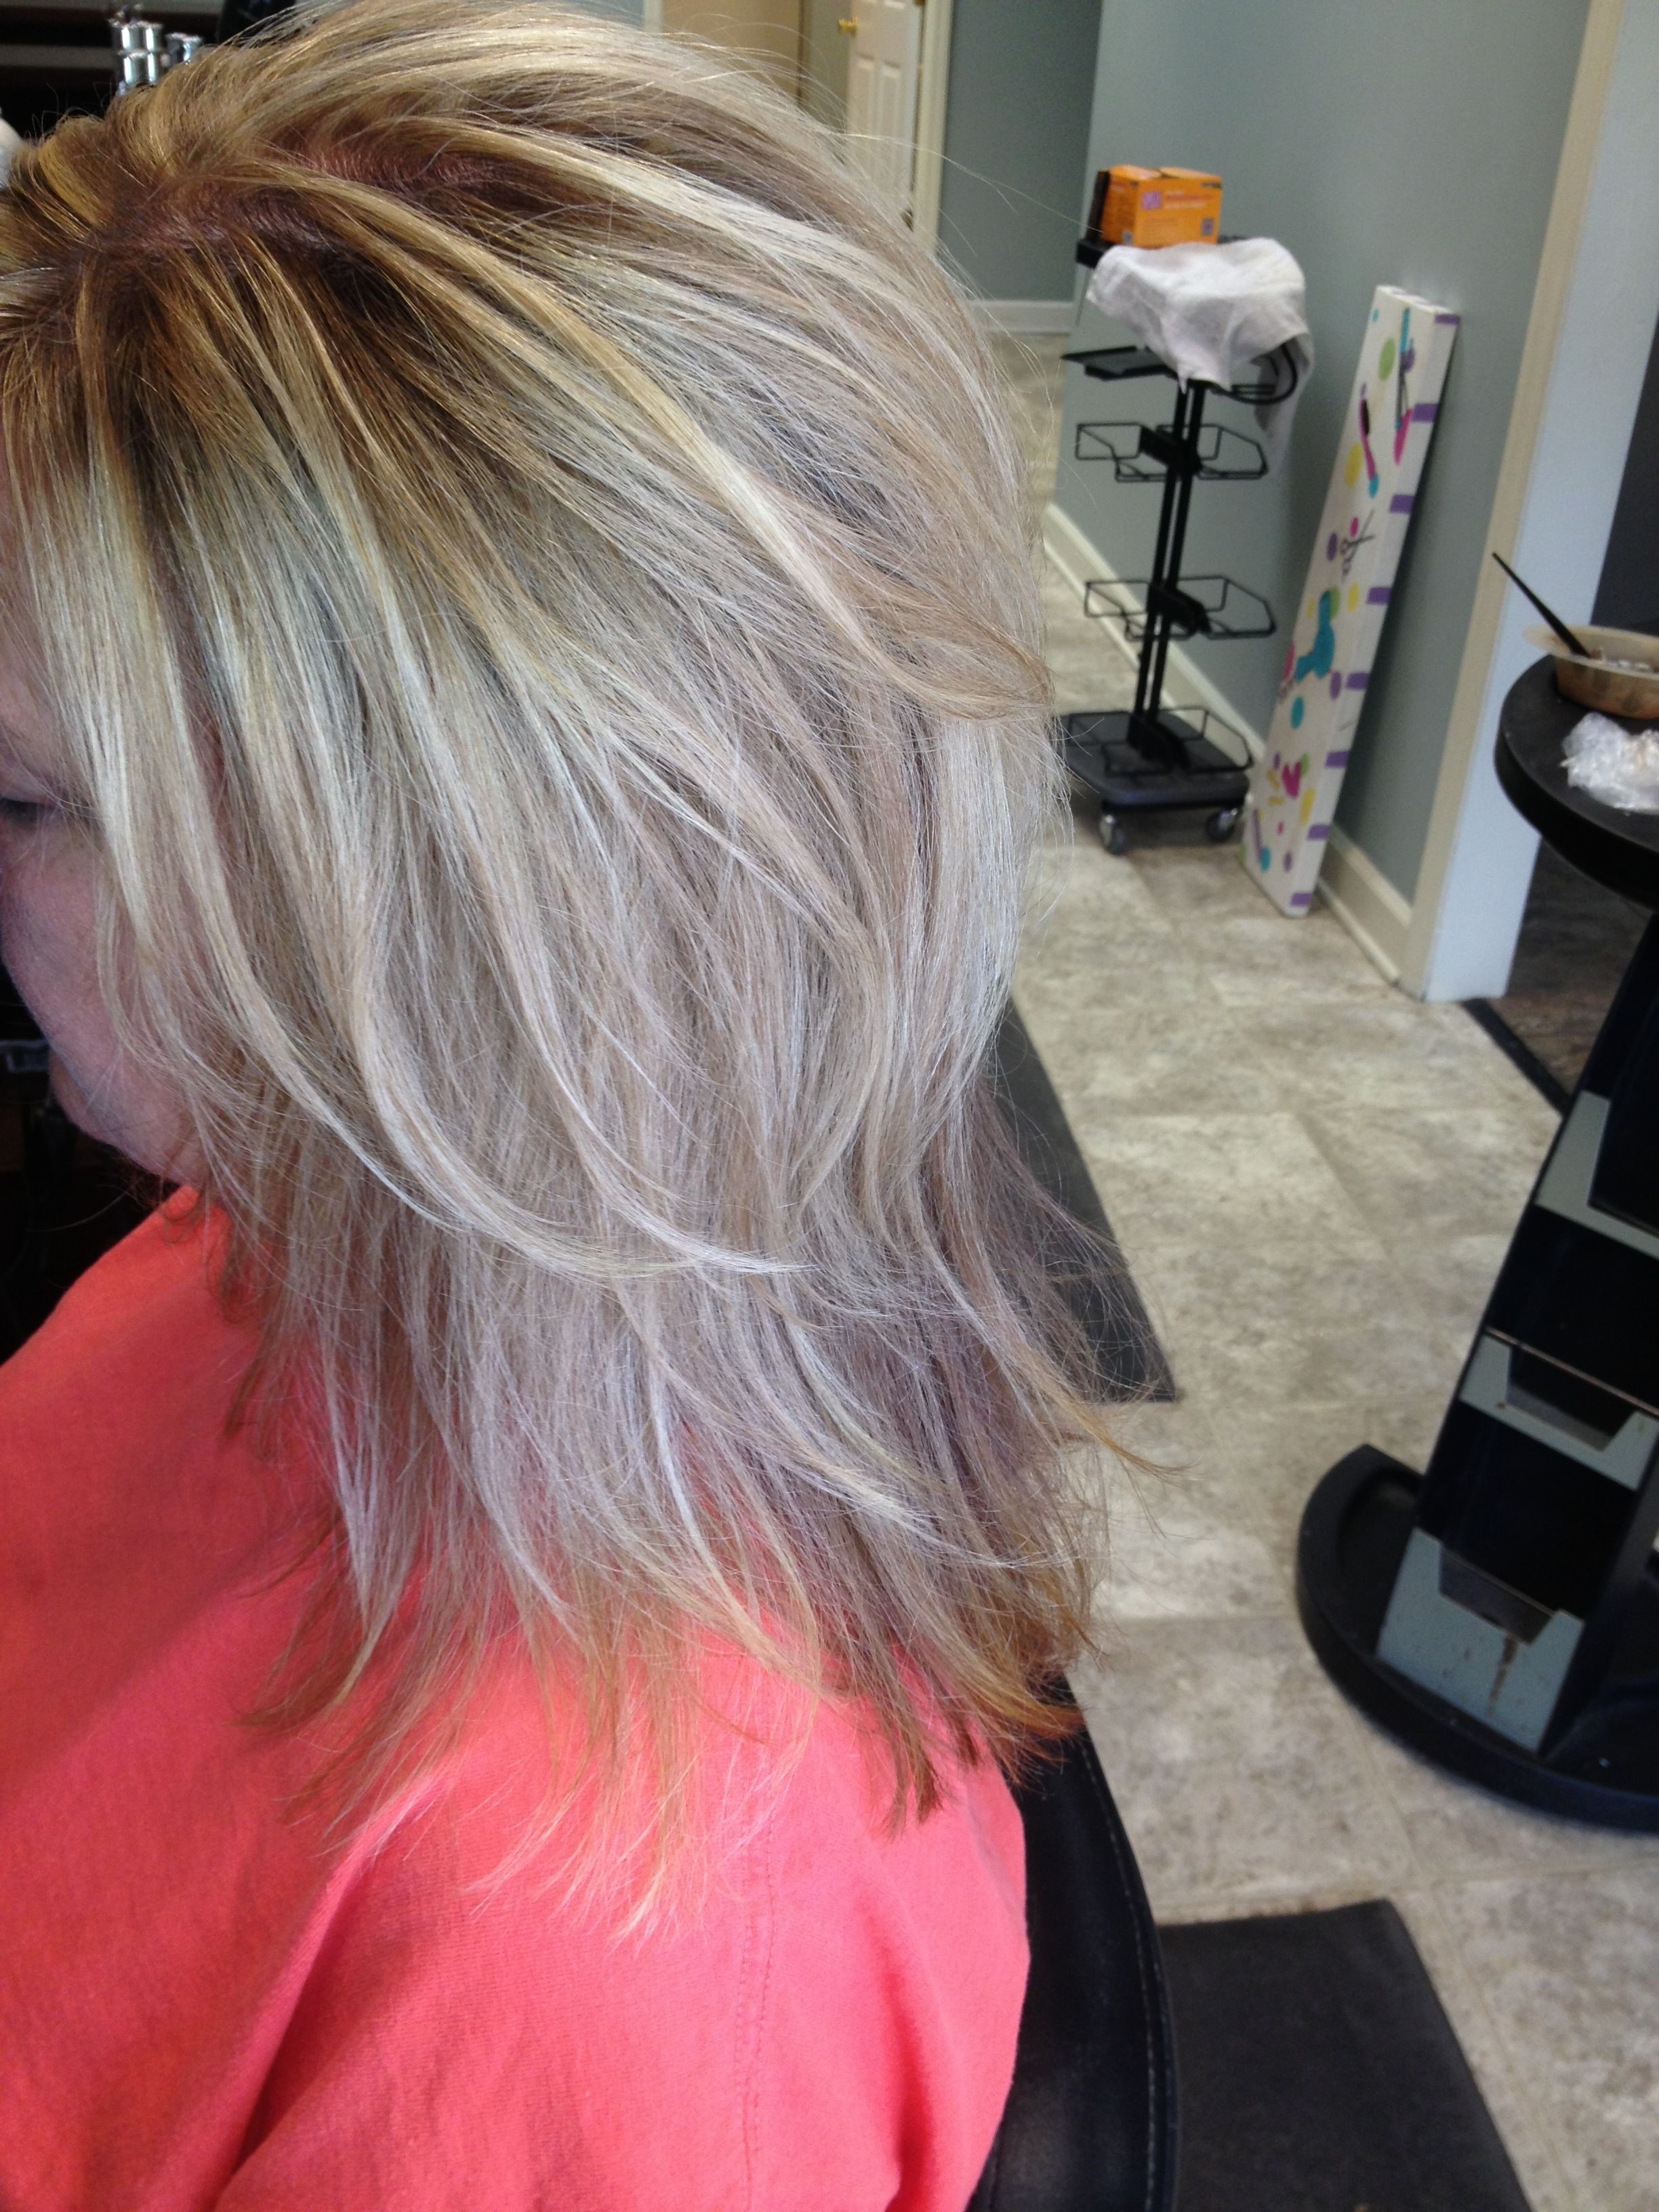 Short Grey Hair With Highlights Betsy Hyman Added Highlights And